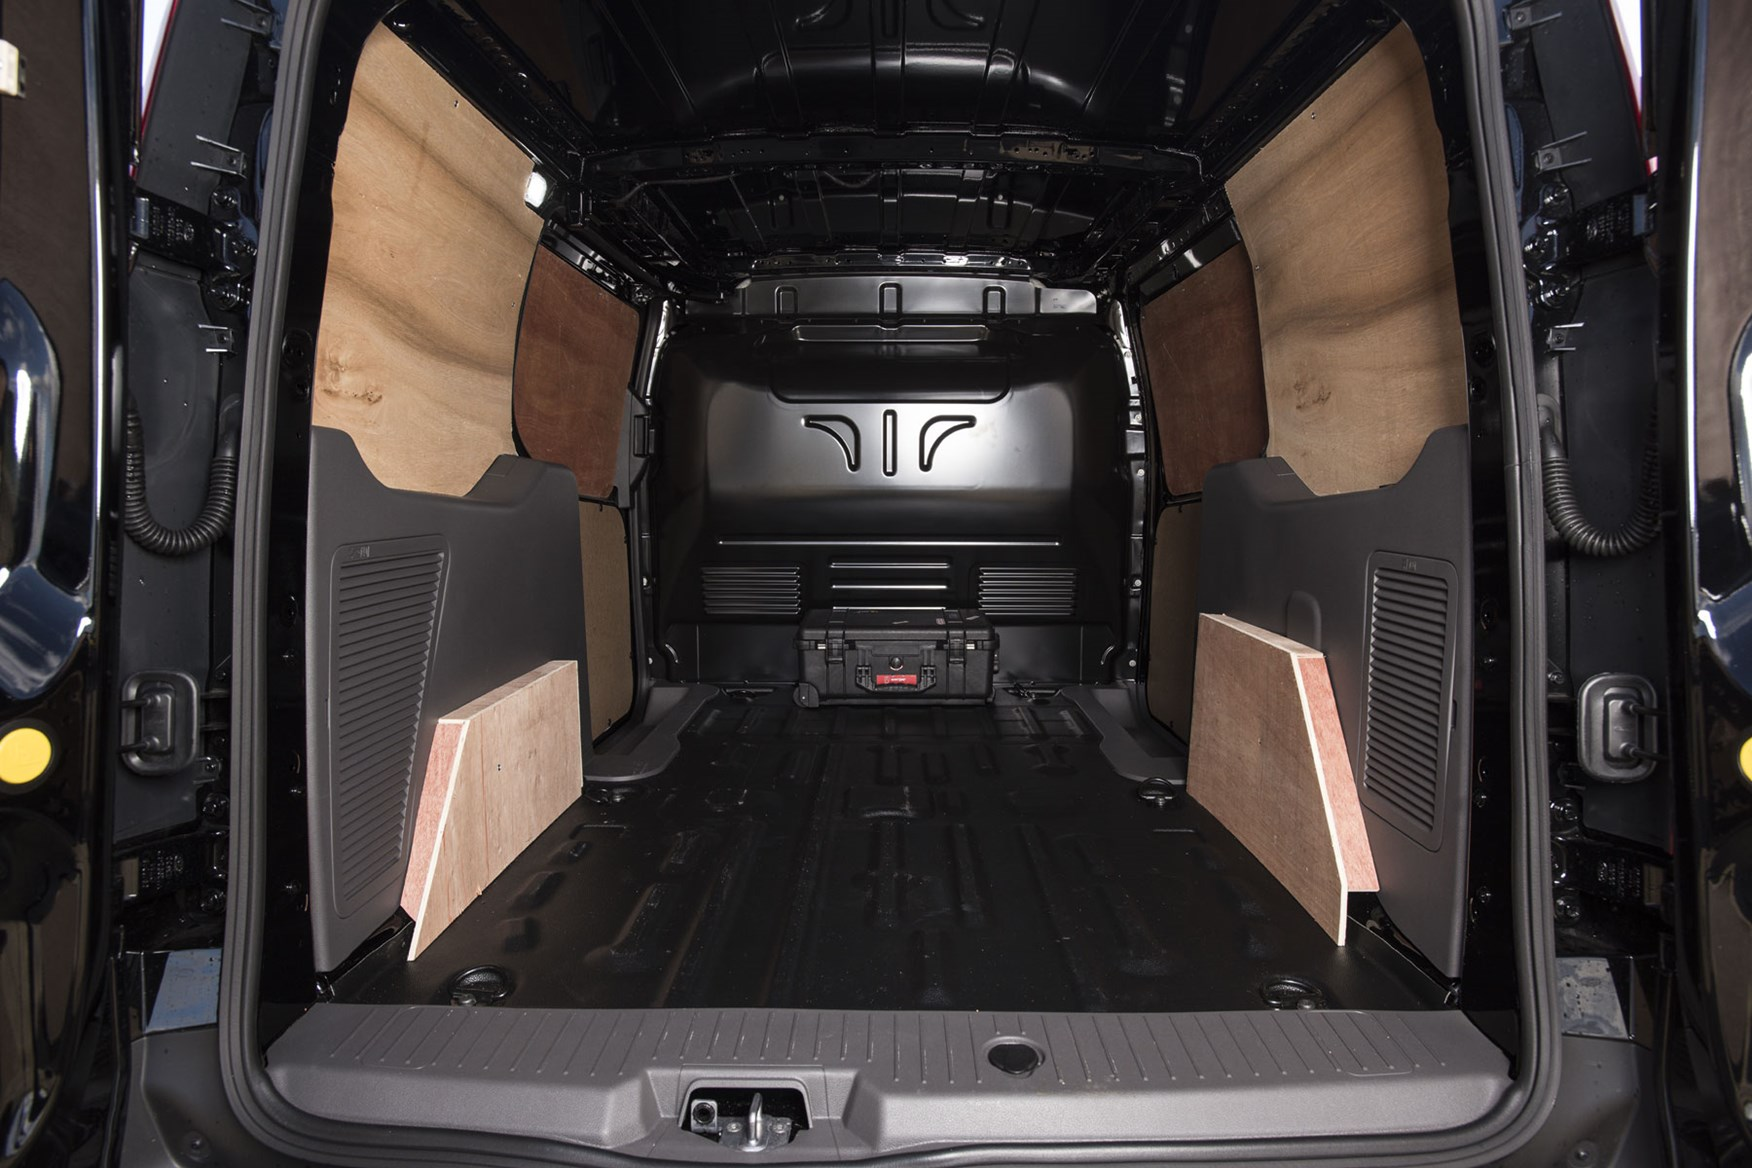 Ford Transit Connect automatic review - load area, 2019